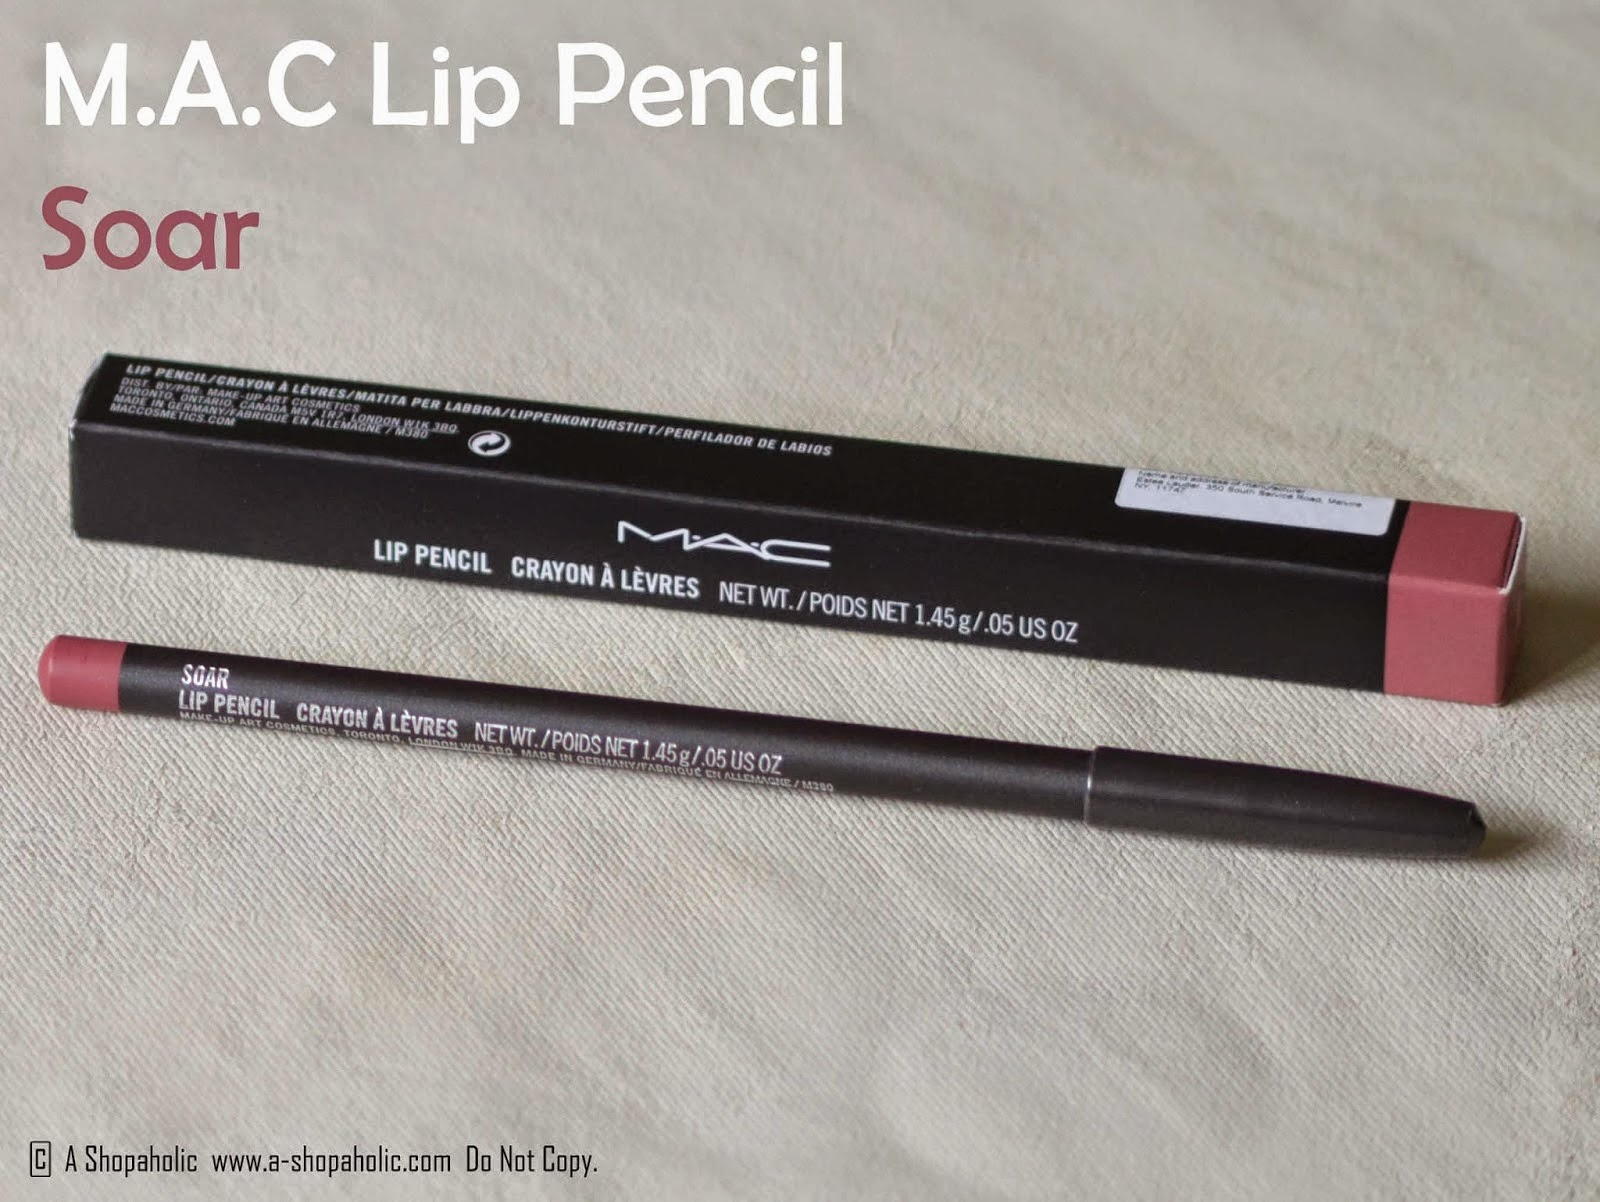 Favori DivaDebbi: A Crisis! MAC's Soar Lip Pencil is out of stock EVERYWHERE QE71